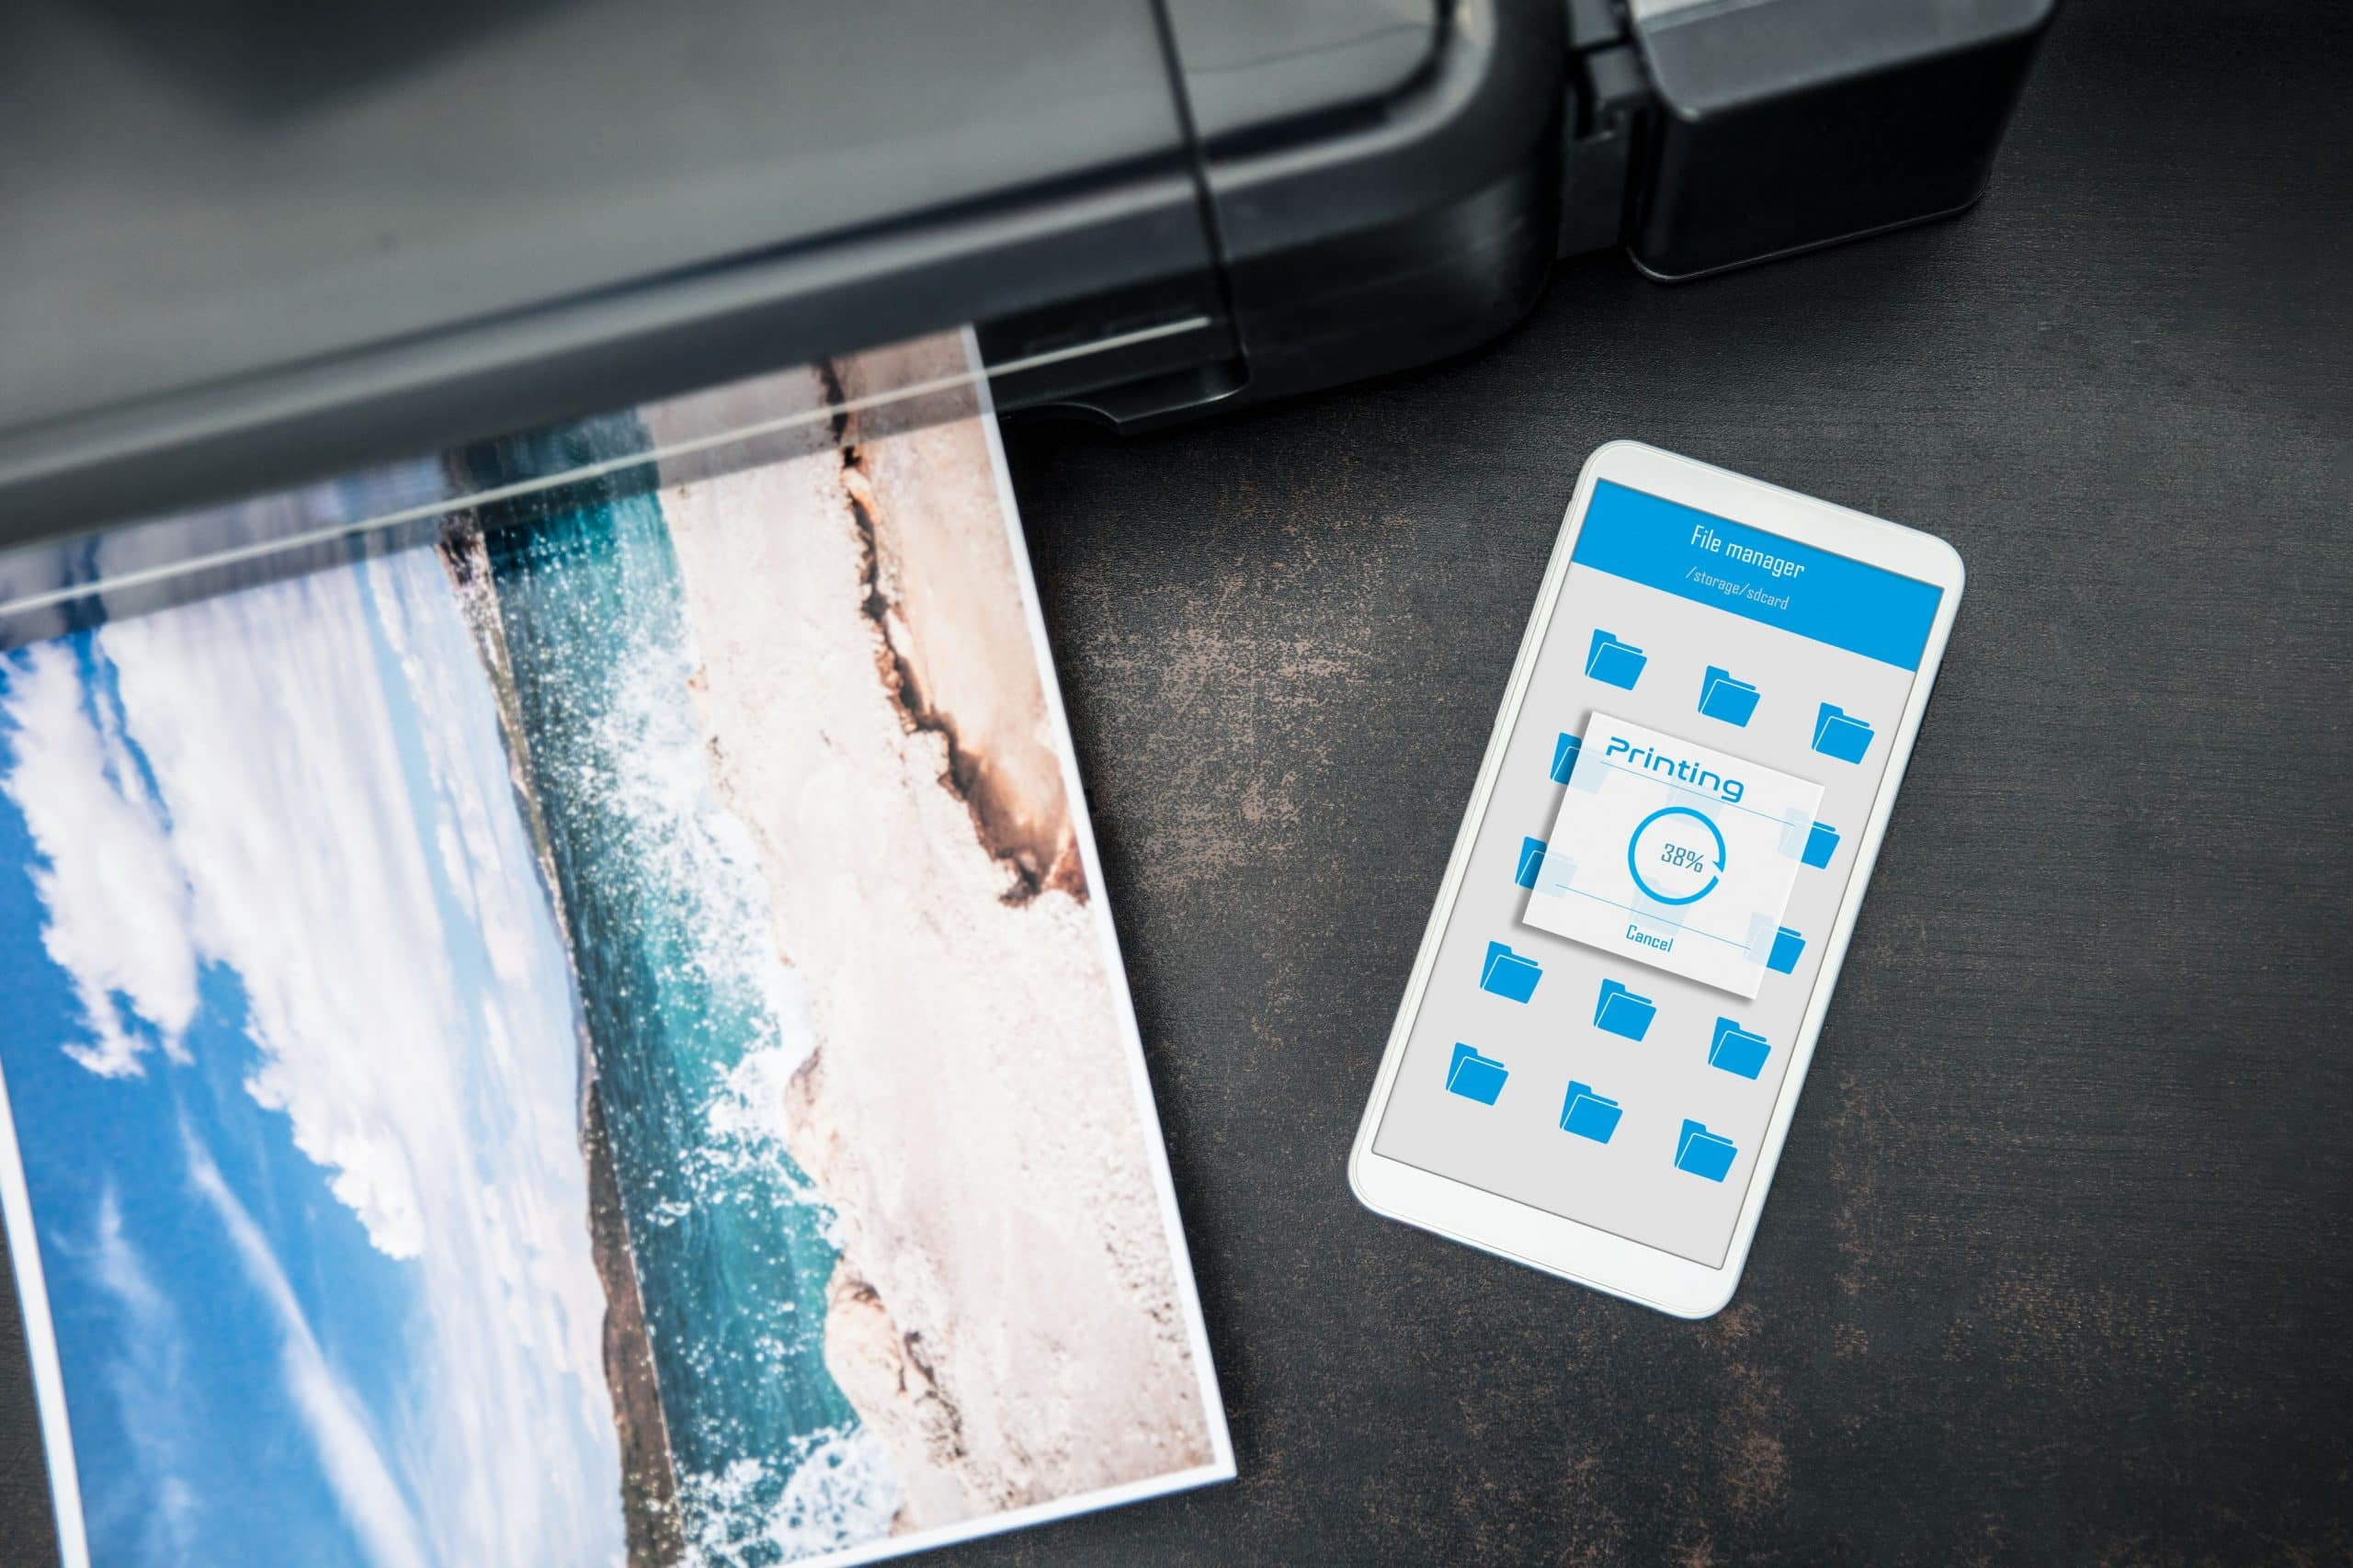 smartphone connected to the wireless printer is laying on the desk 945226682 5af5d58e6bf0690036a2fa13 scaled